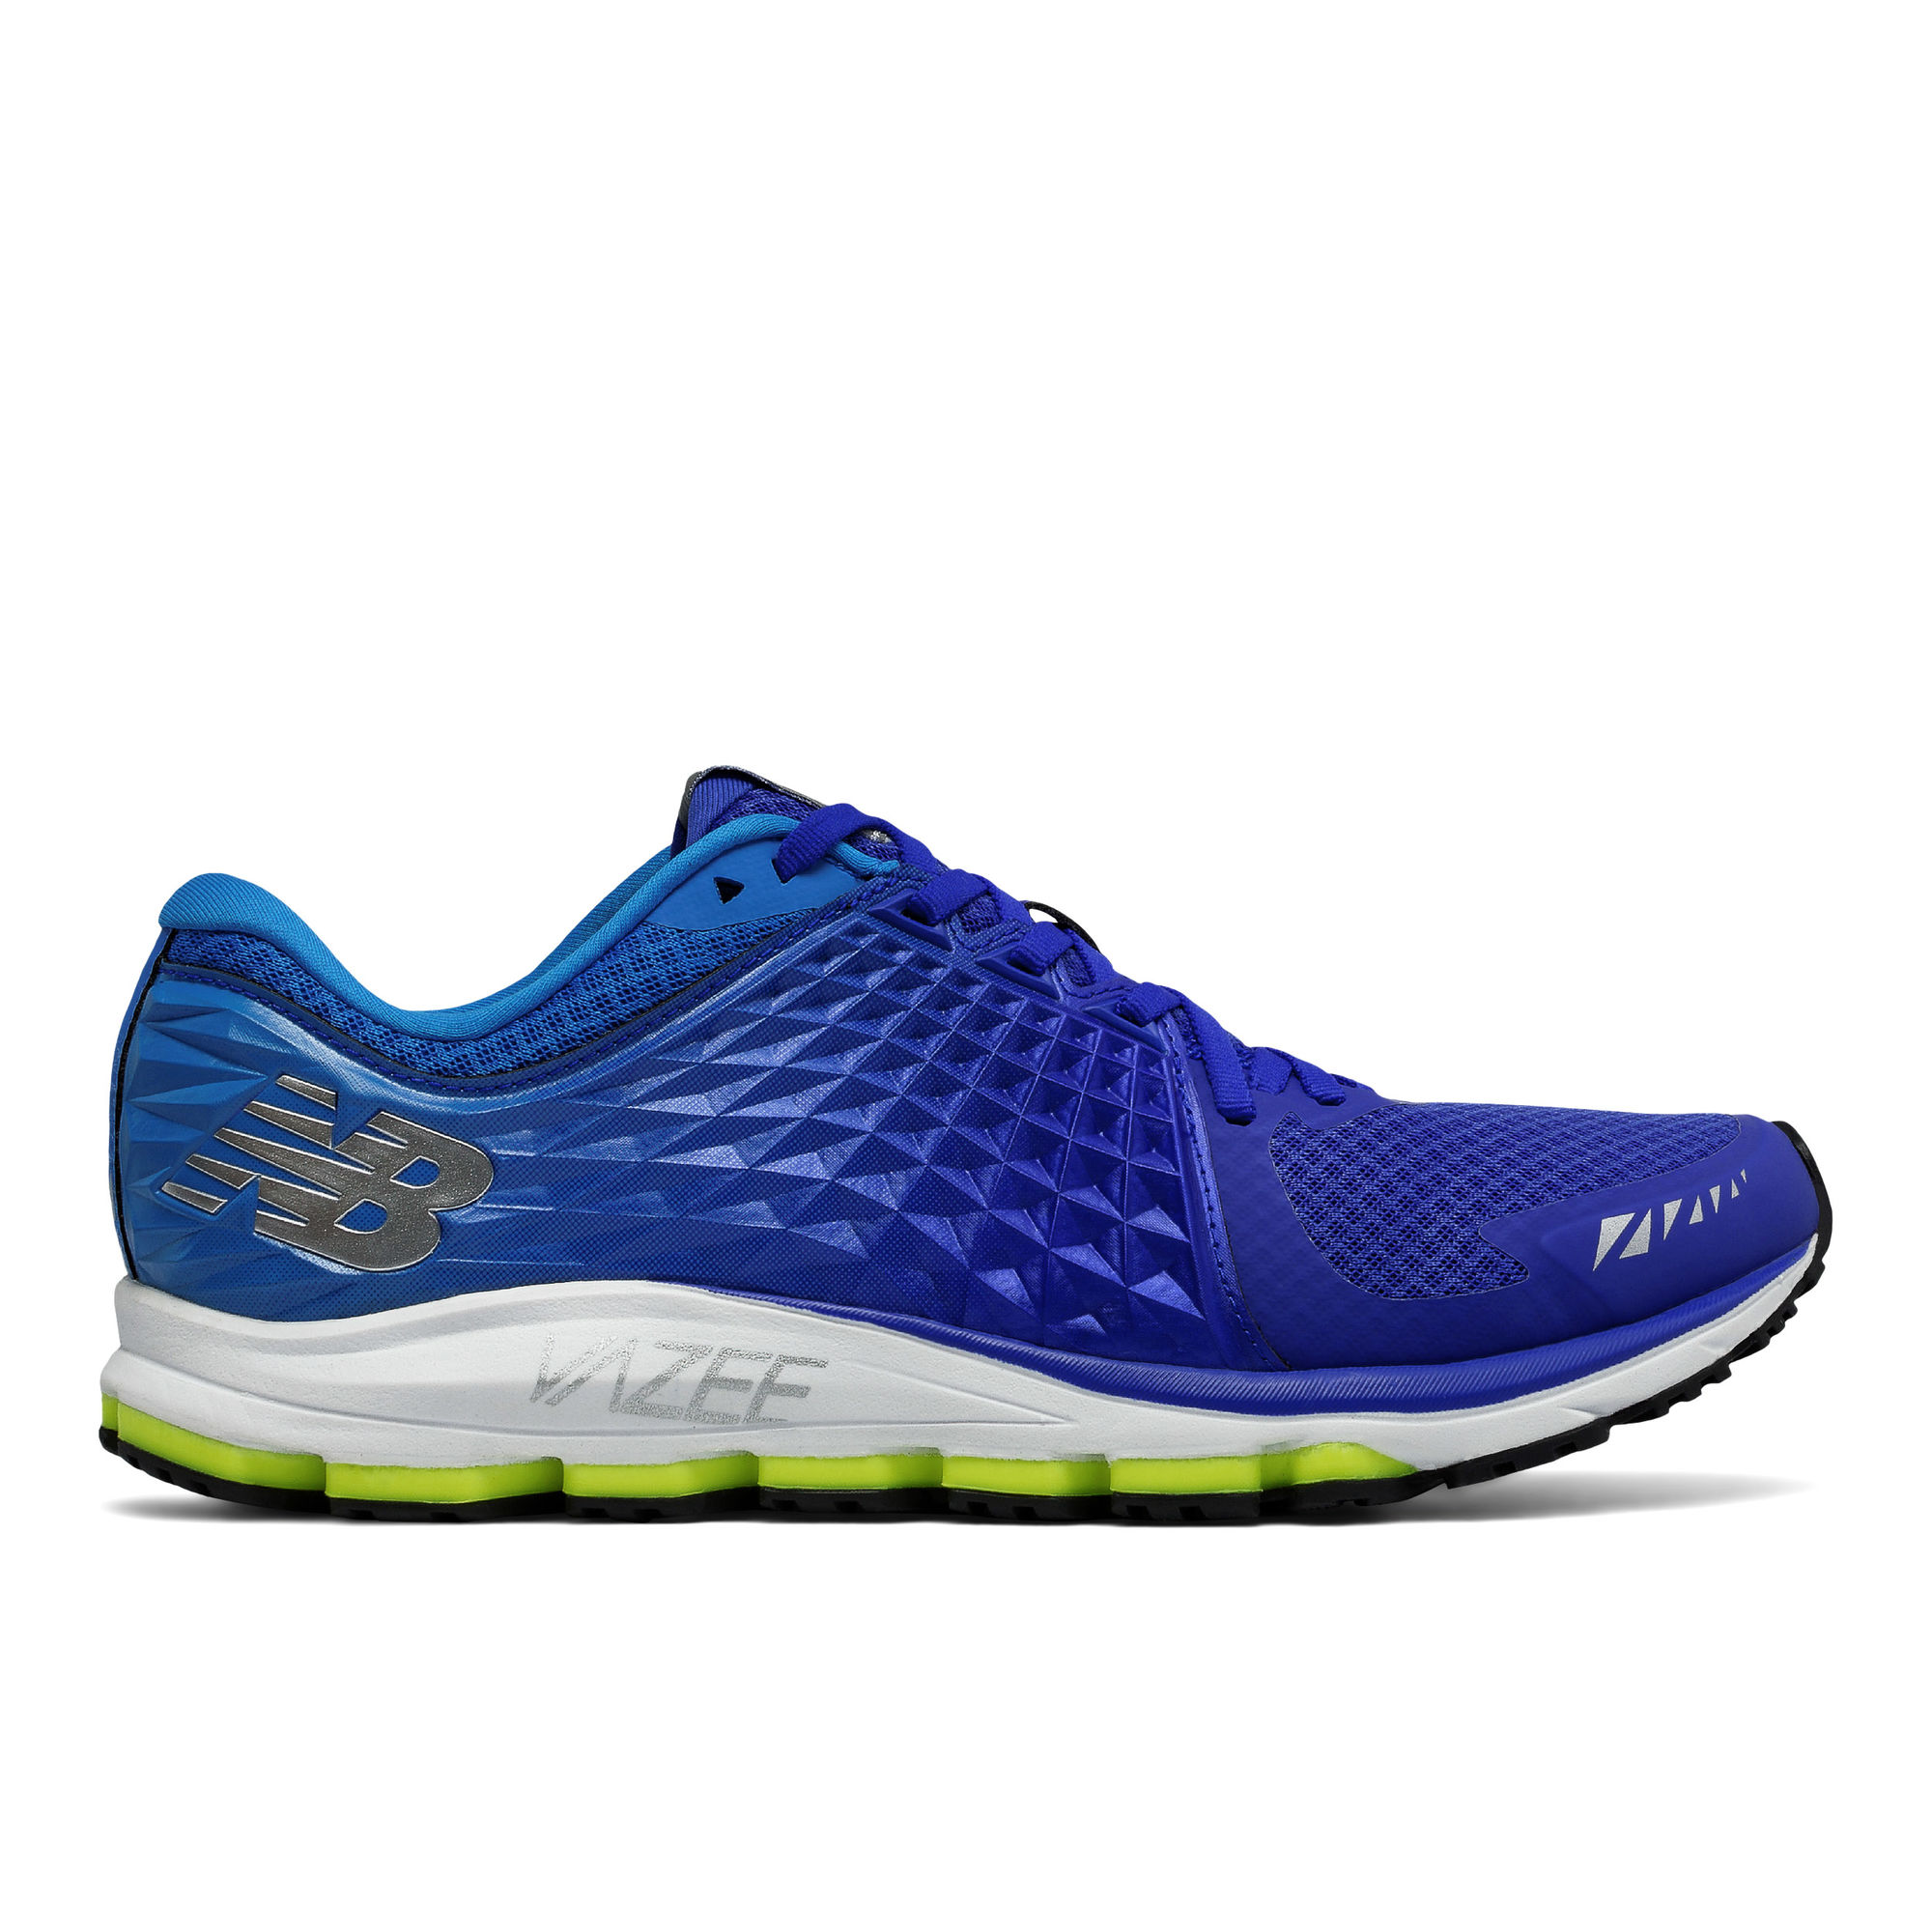 New Balance Vazee 2090v1 in Blau